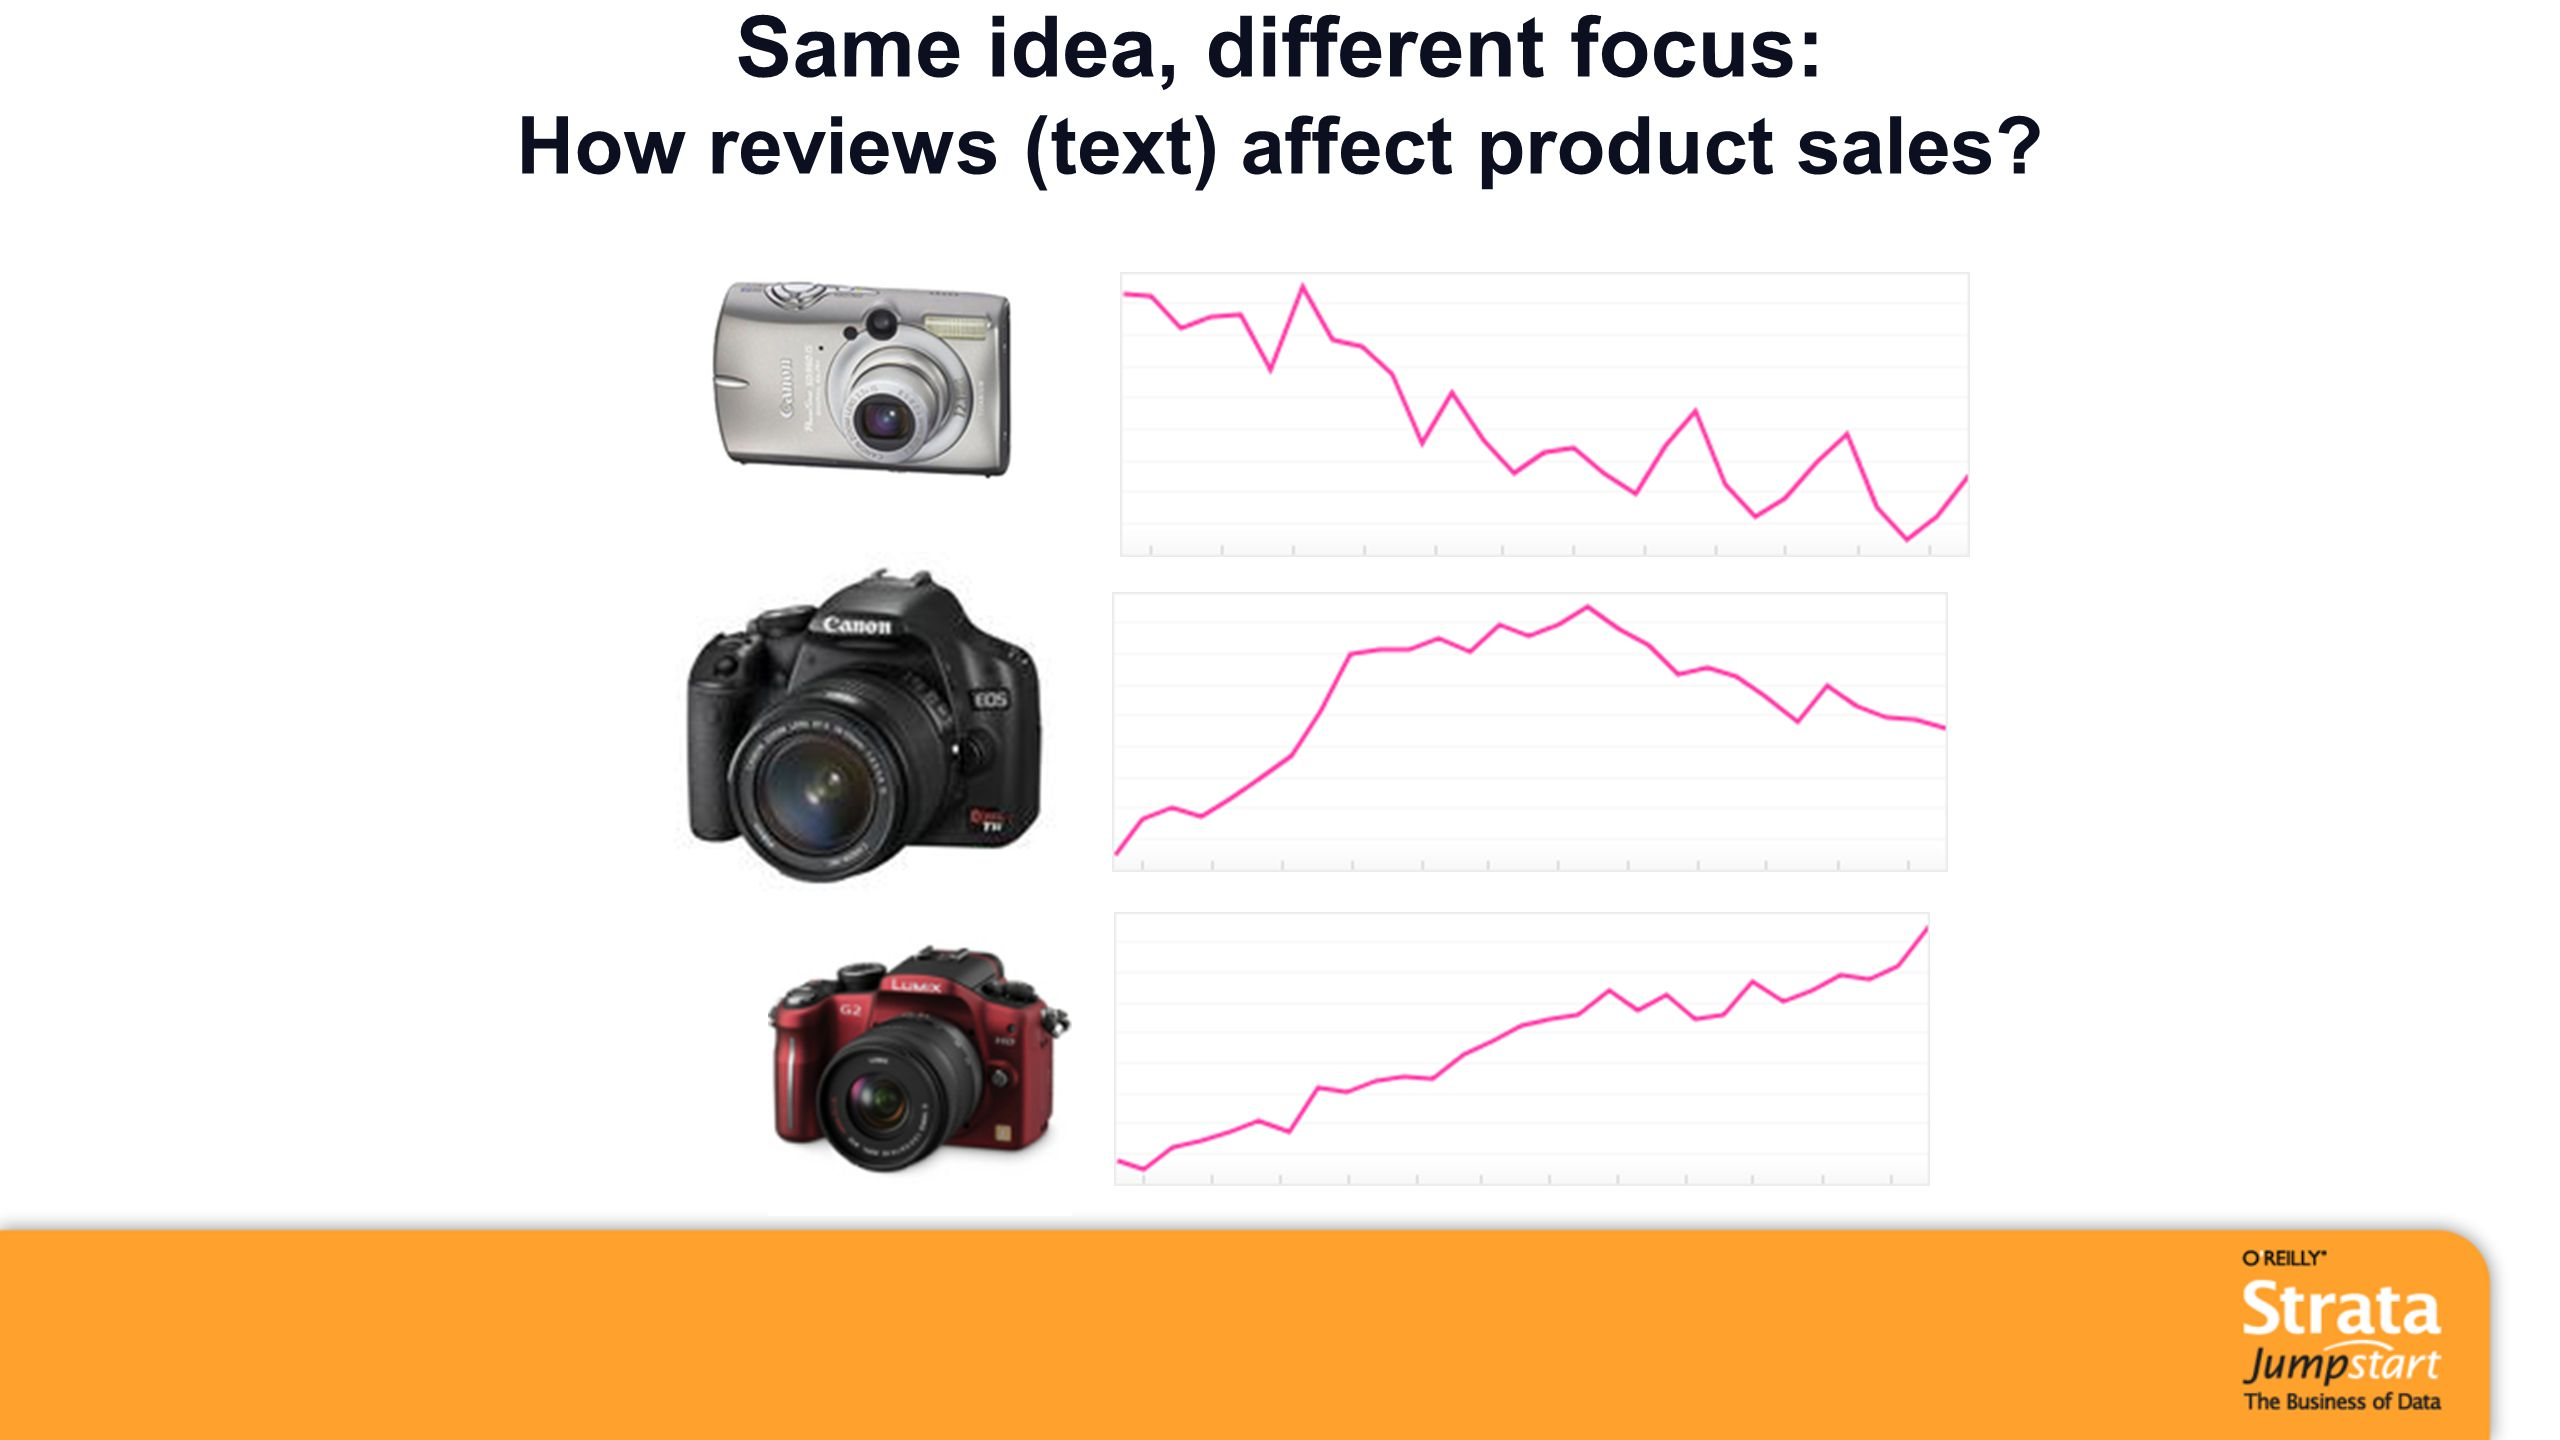 Same idea, different focus: How reviews (text) affect product sales?